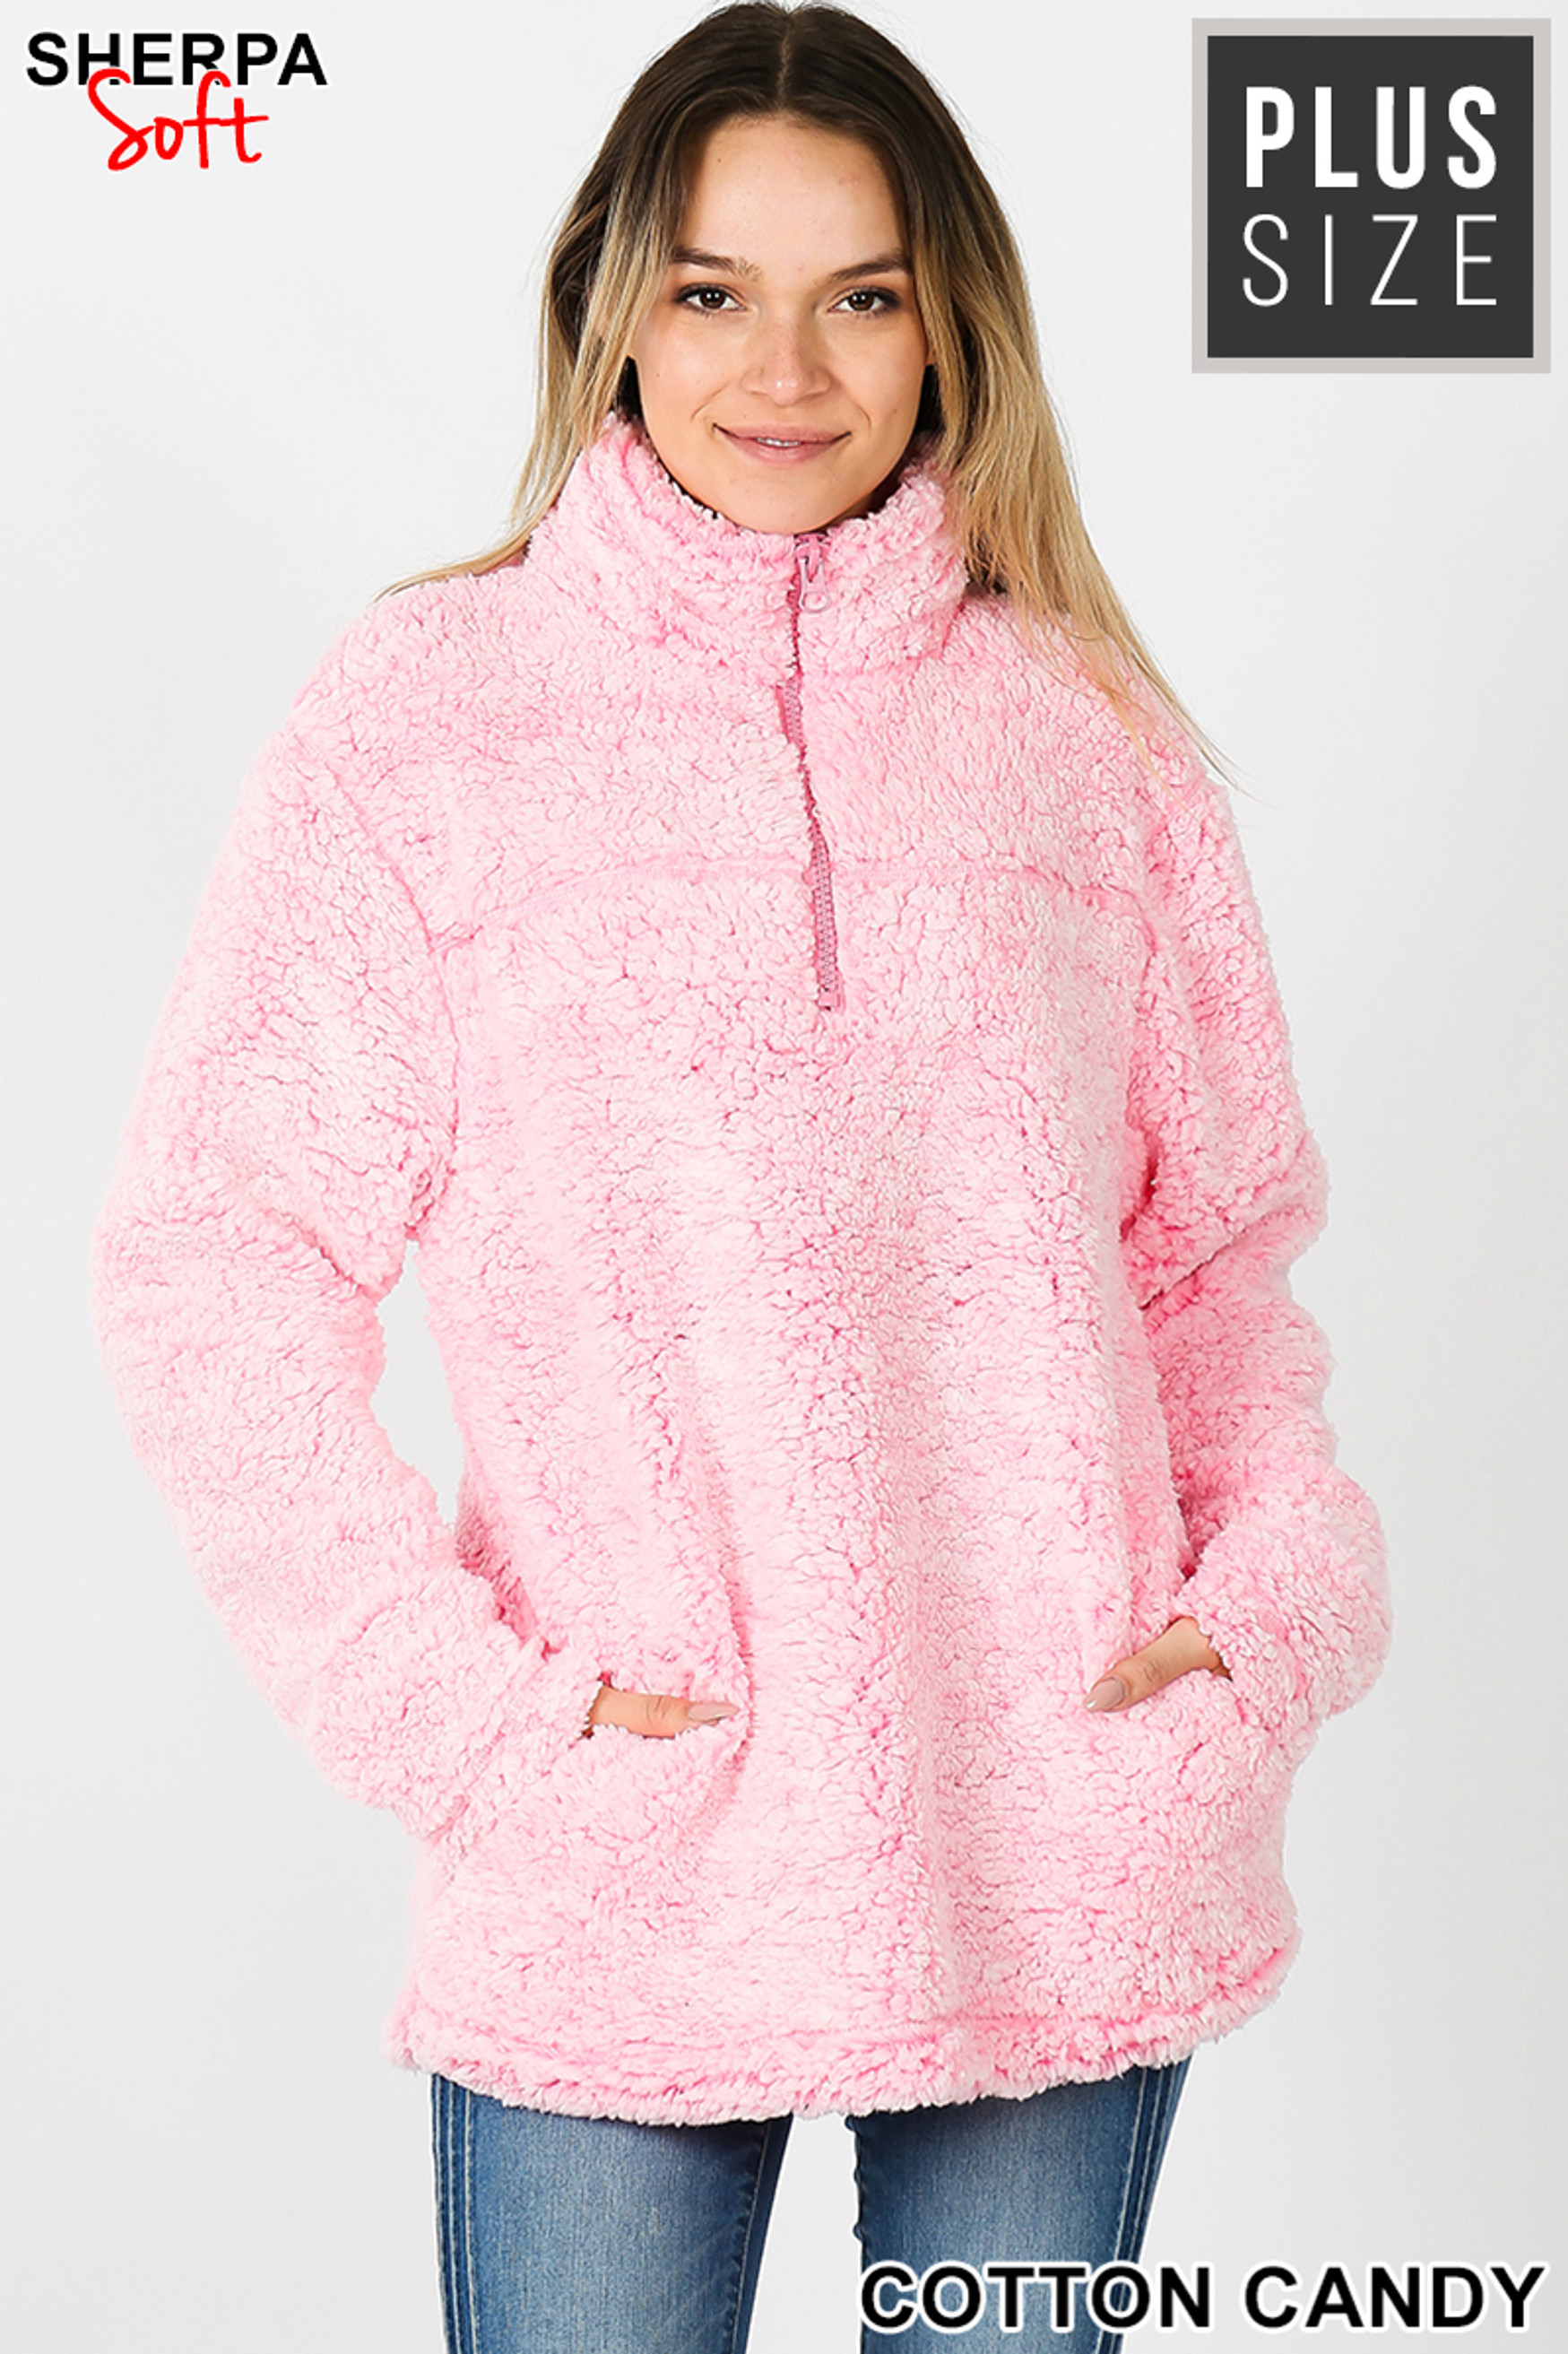 Popcorn Sherpa Half Zip Plus Size Pullover with Side Pockets